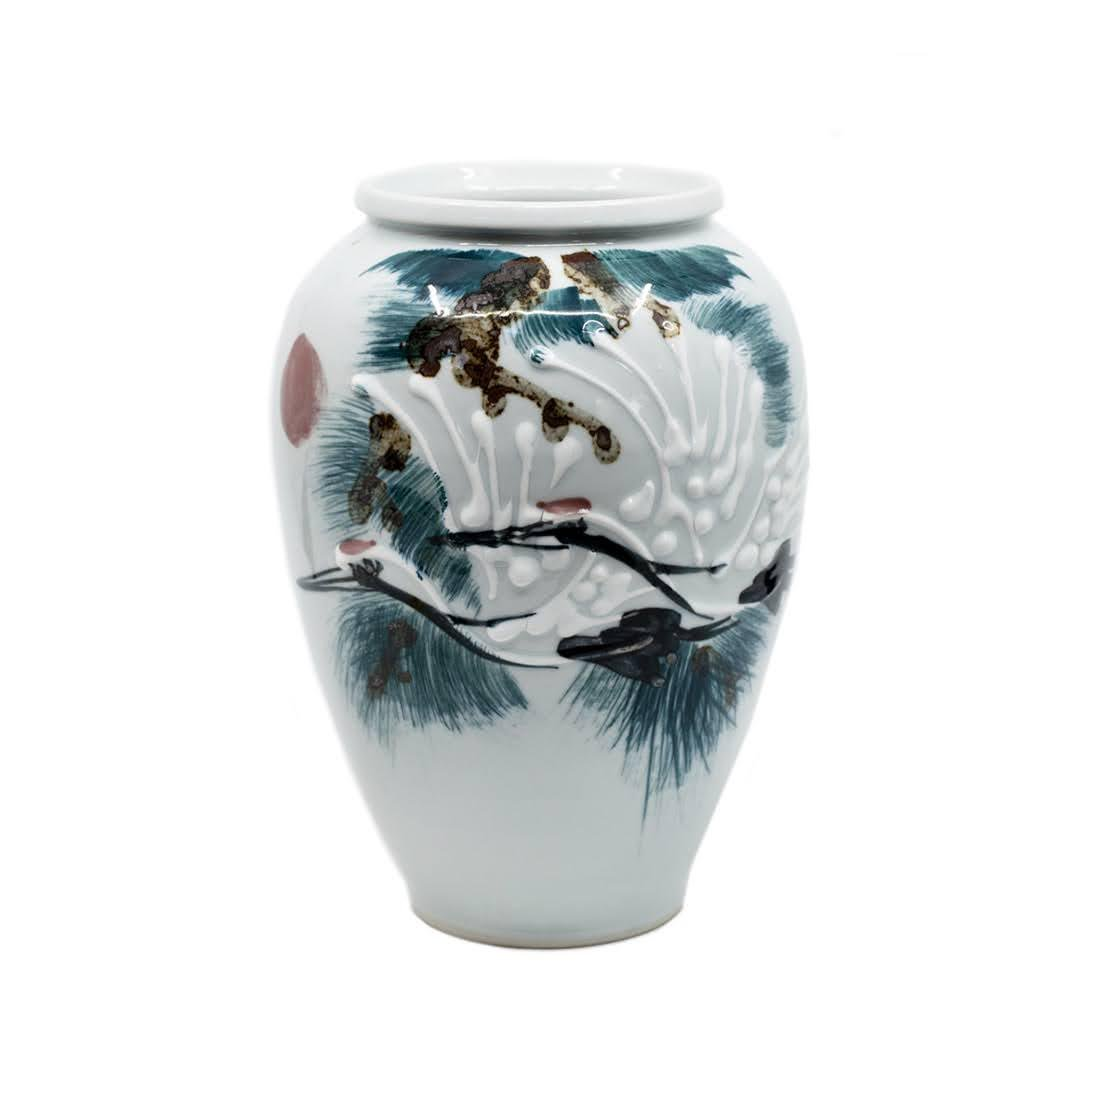 White Moriage Vase with Japanese Red Crown Cranes